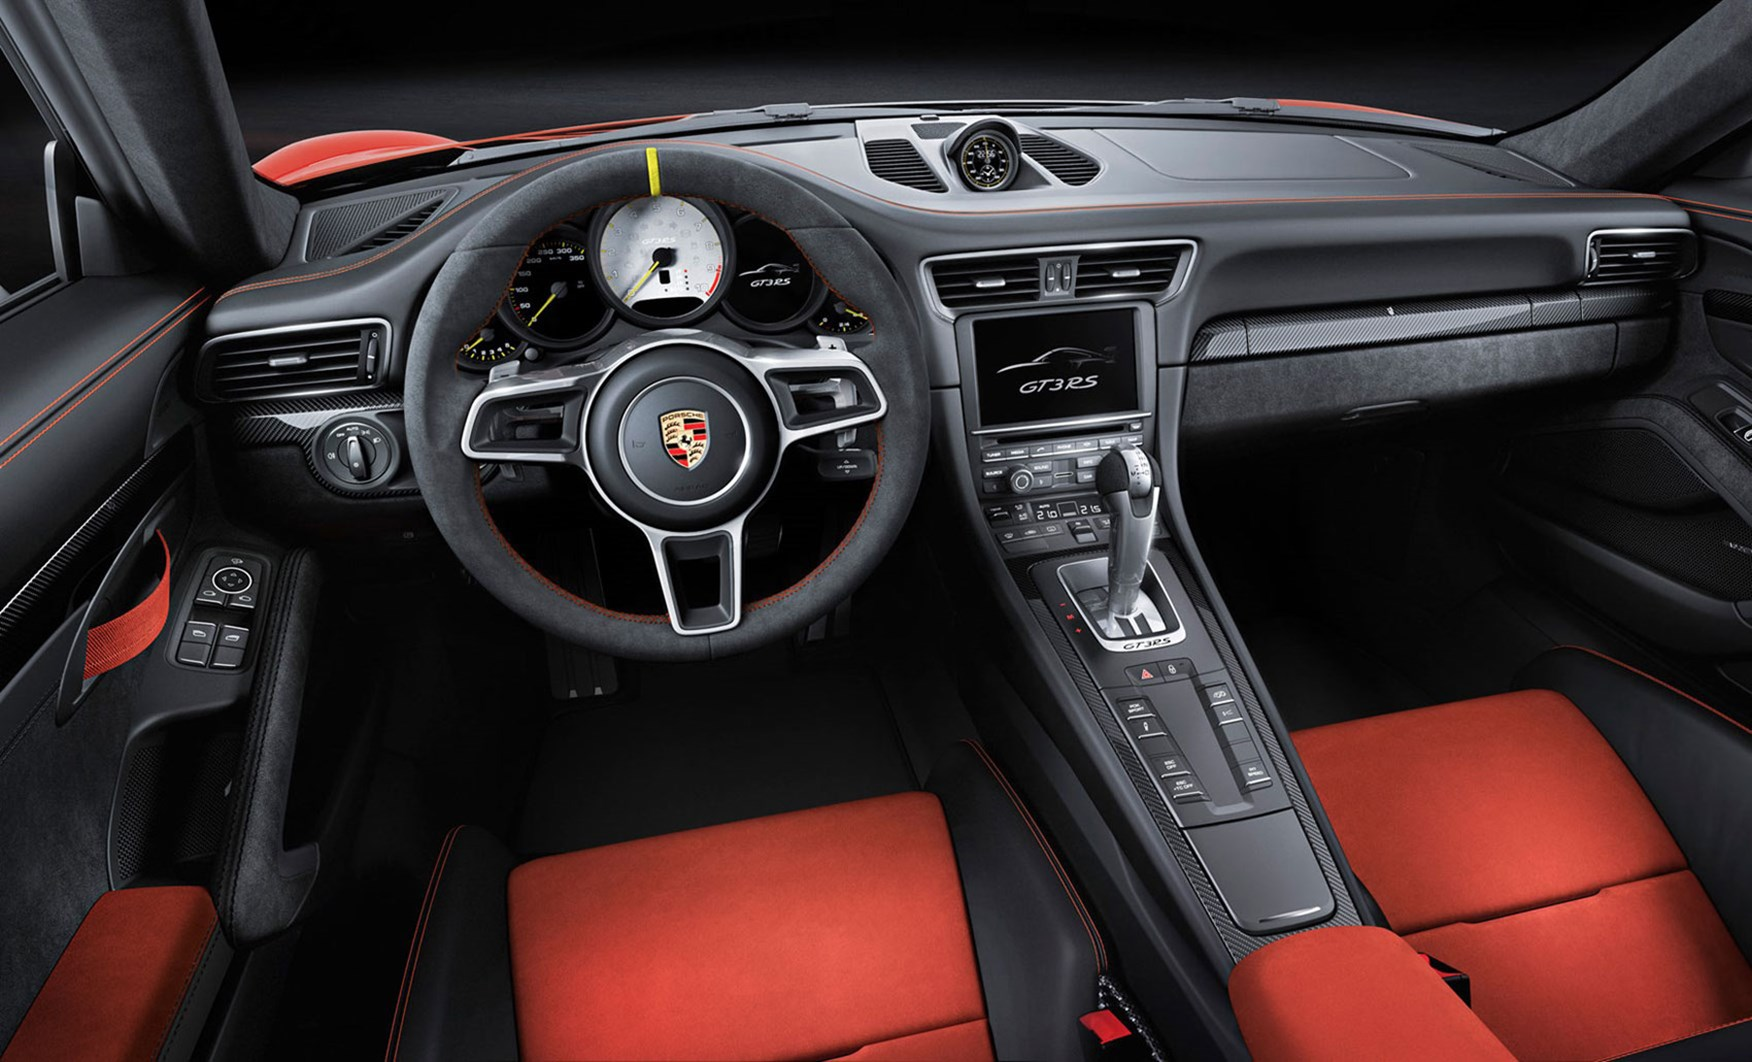 A Guided Tour Of The 2015 Porsche 911 Gt3 Rs By The Boss By Car